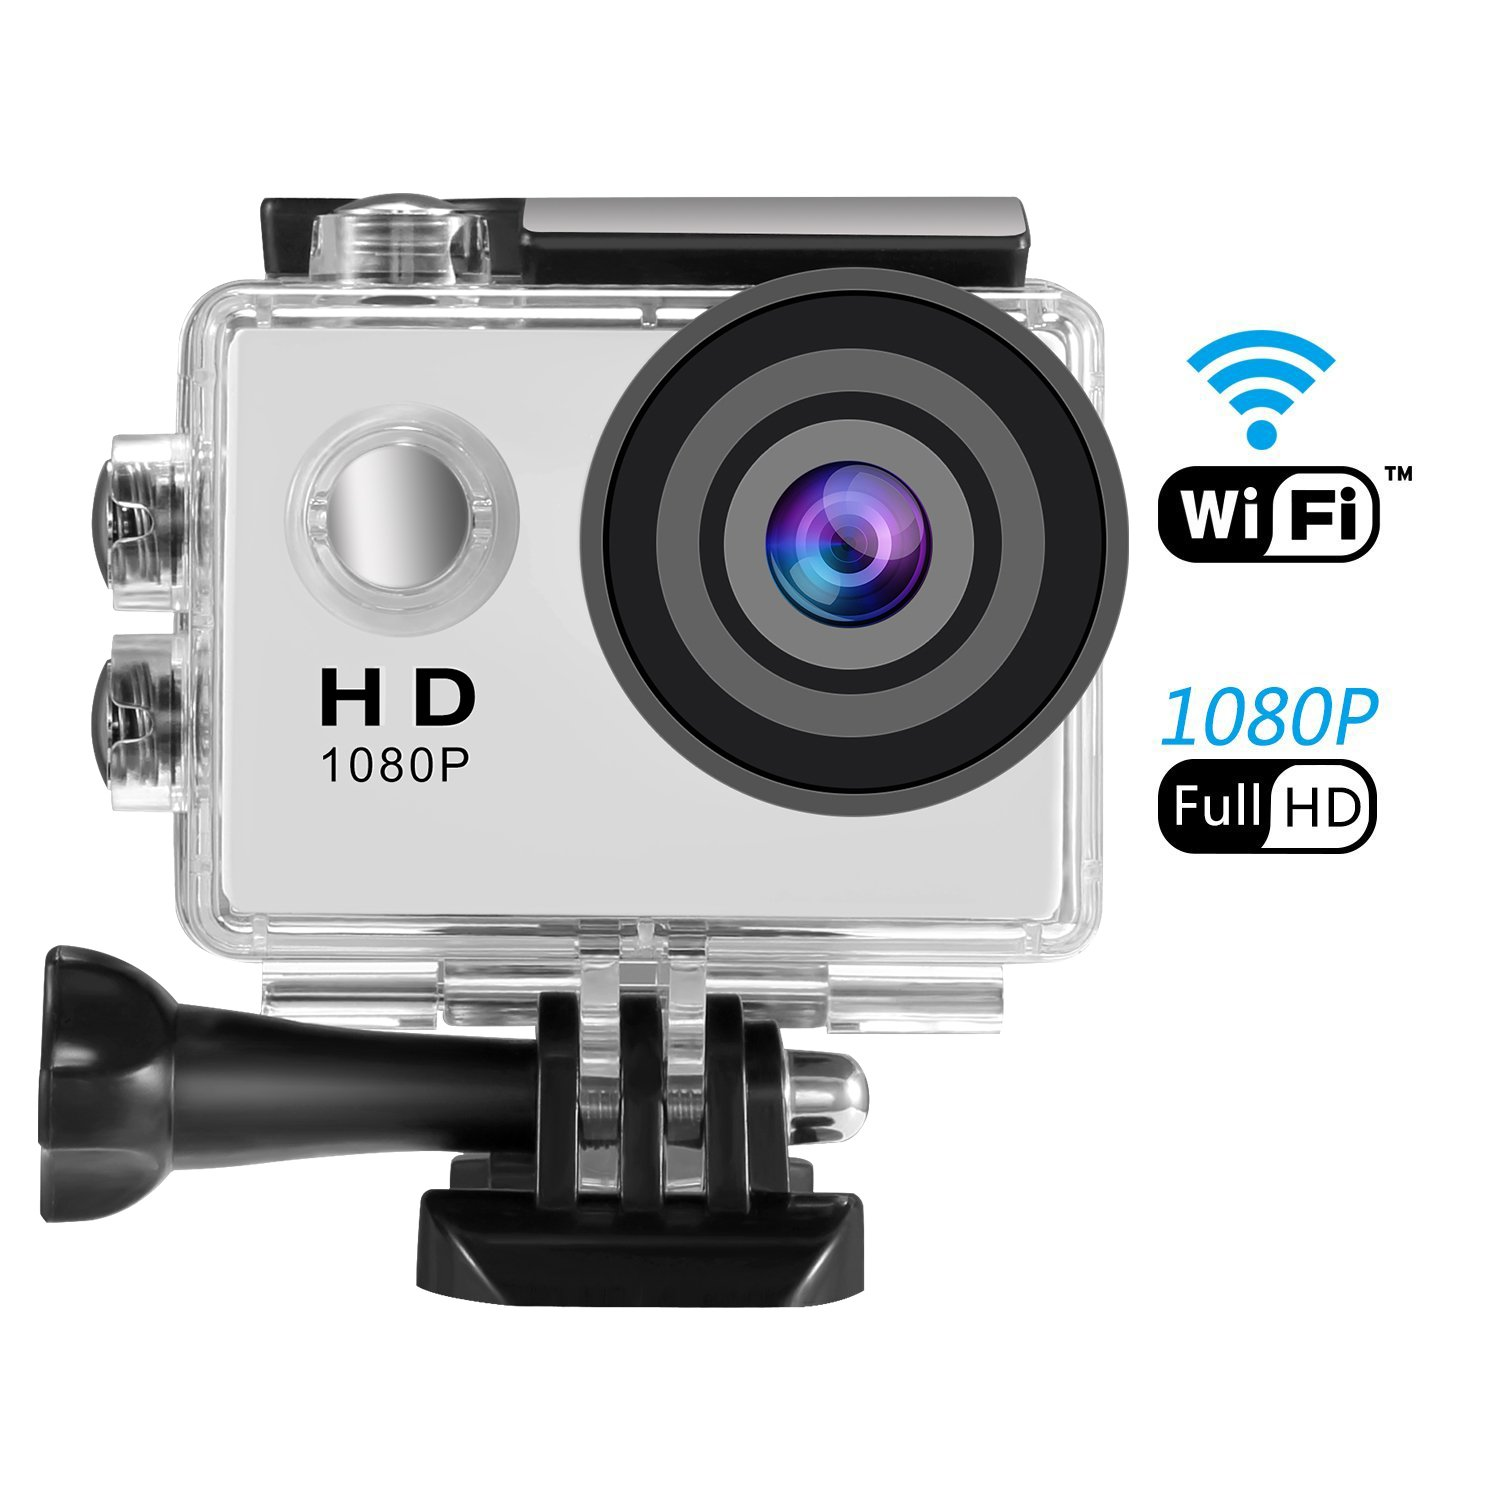 Action Camera, SENDOW Waterproof Underwater Camera for Helmet WiFi 1080P Full HD Action Sports Camera With 170°Wide-angle 30M (IP68) for Cycling Jumping Climbing Outing Xsports Parkour by Sendowtek